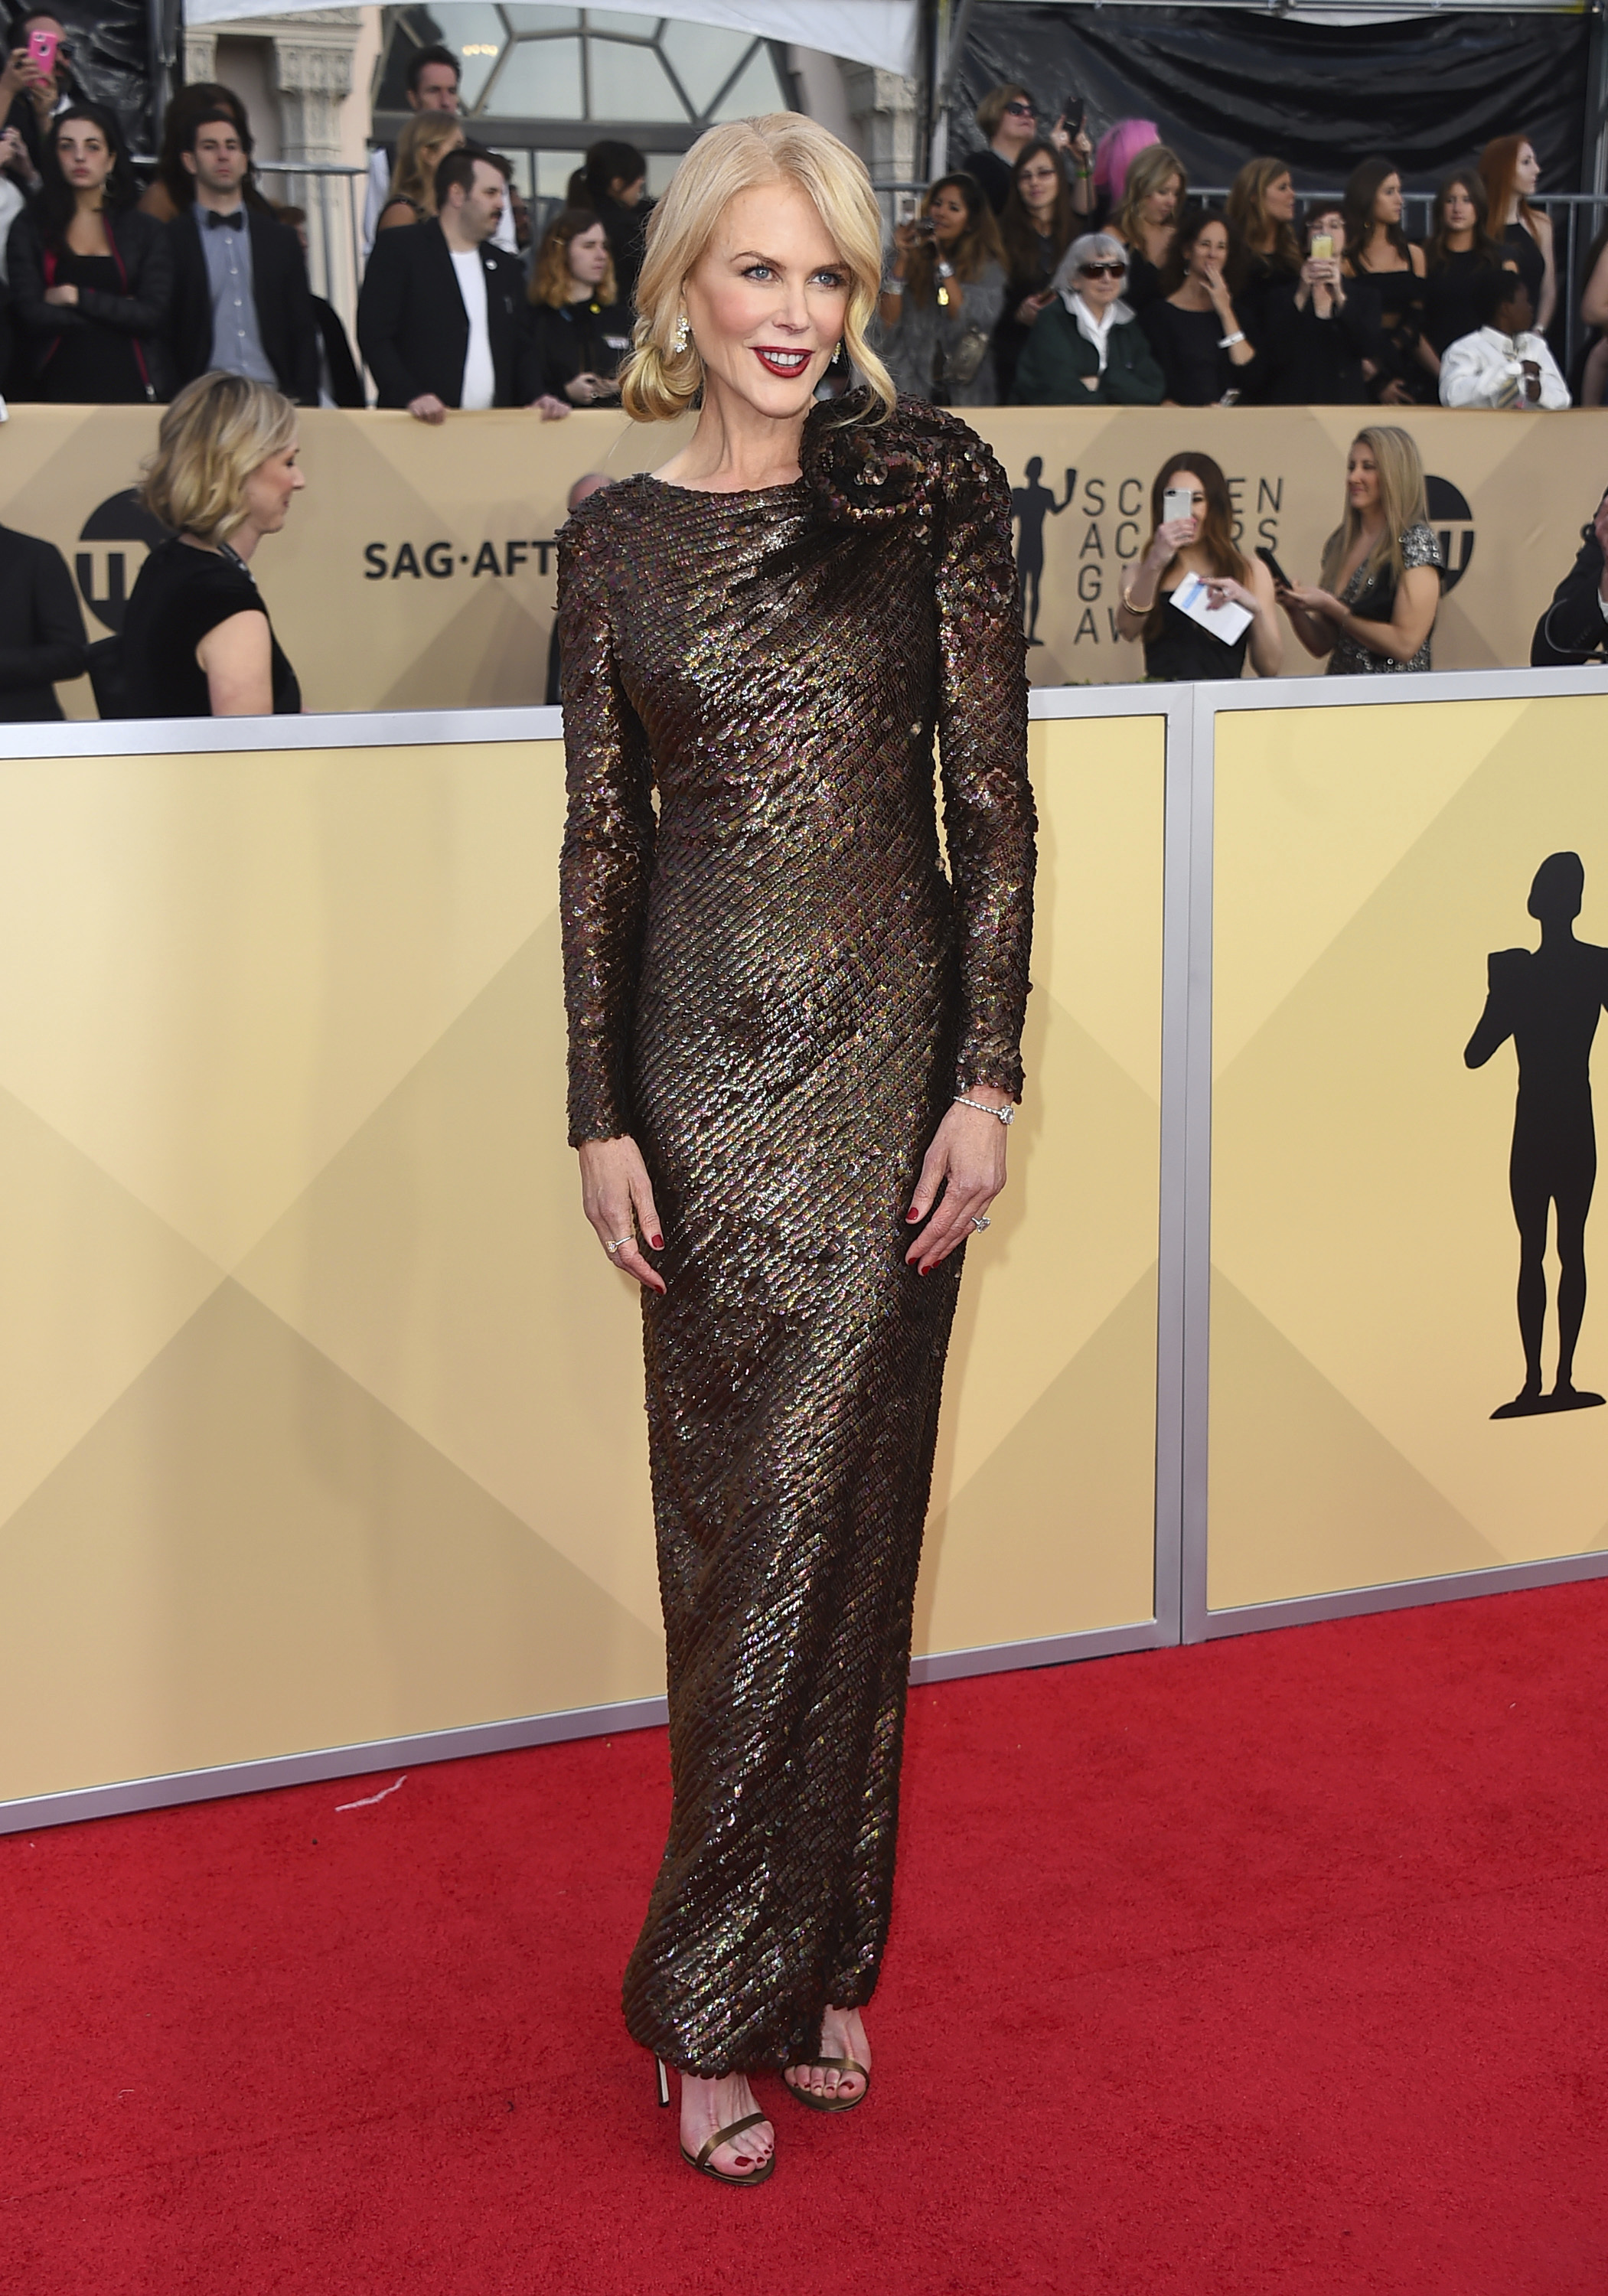 Nicole Kidman arrives at the 24th annual Screen Actors Guild Awards